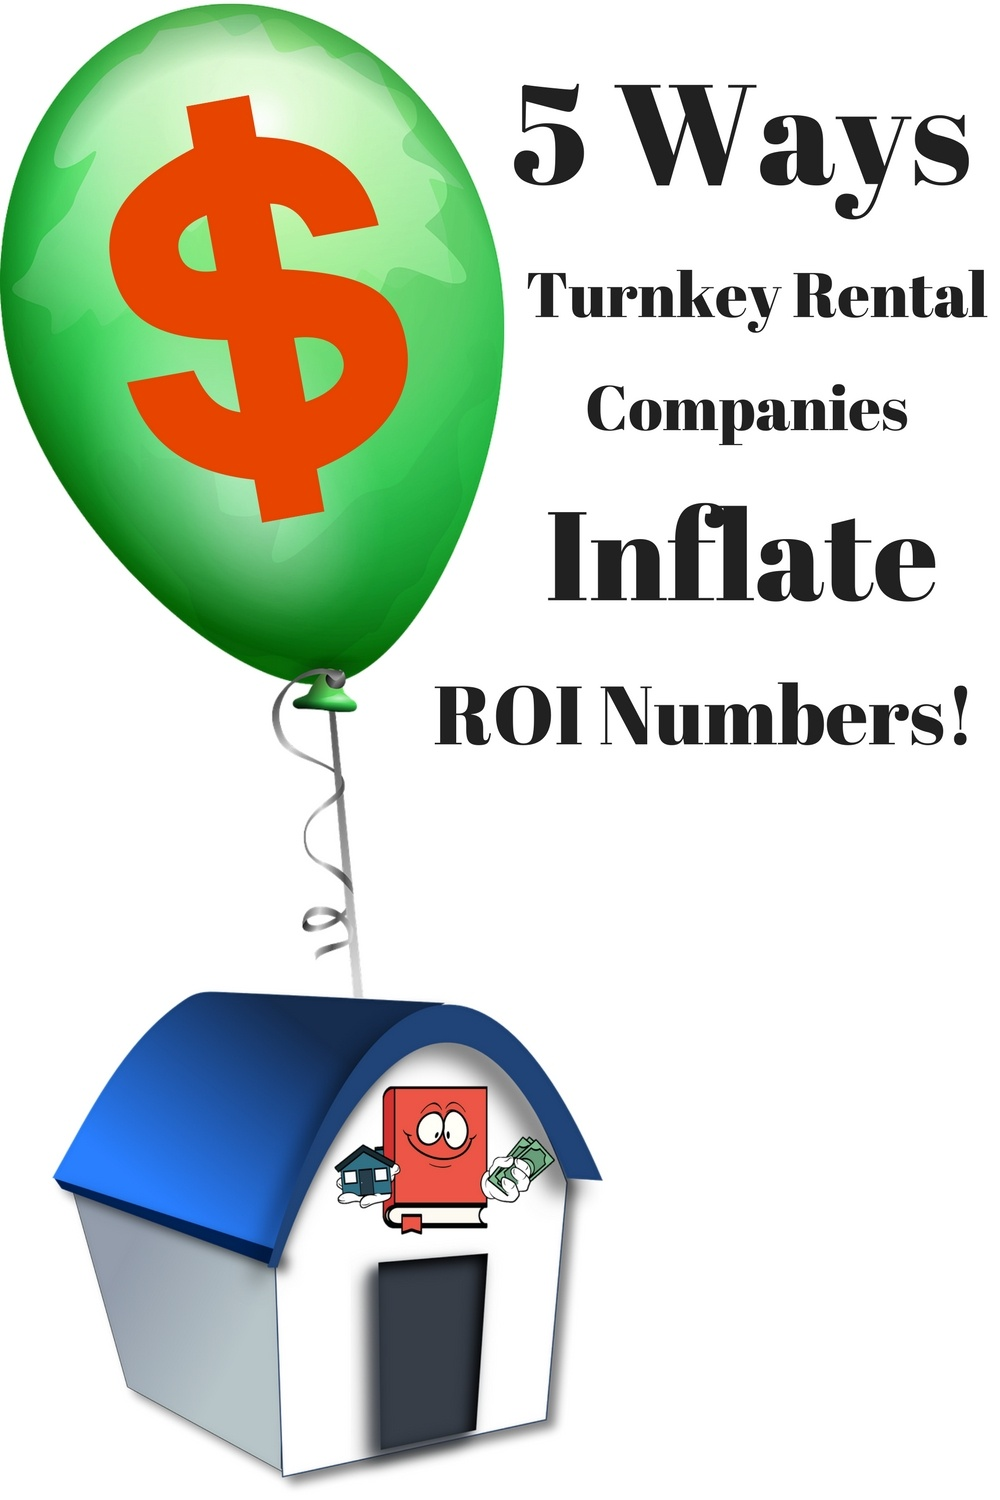 5 ways turnkey companies inflate numbers